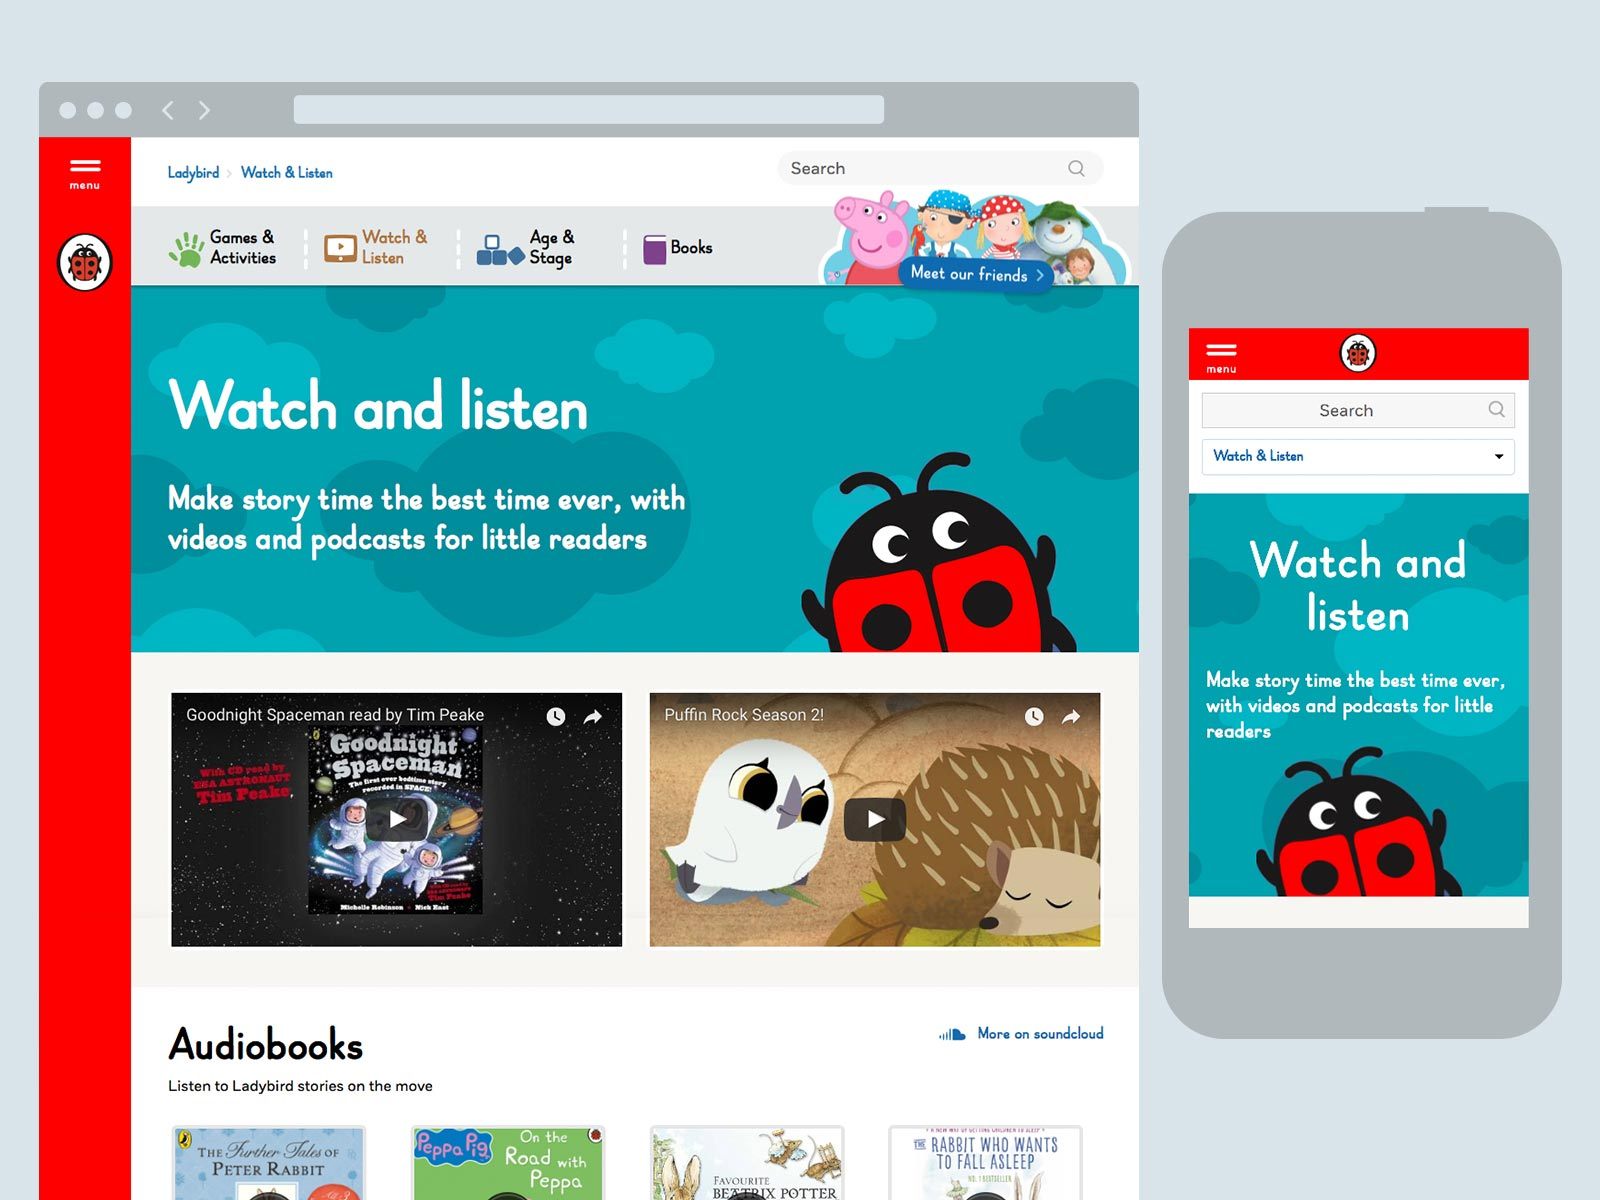 Watch and listen landing page